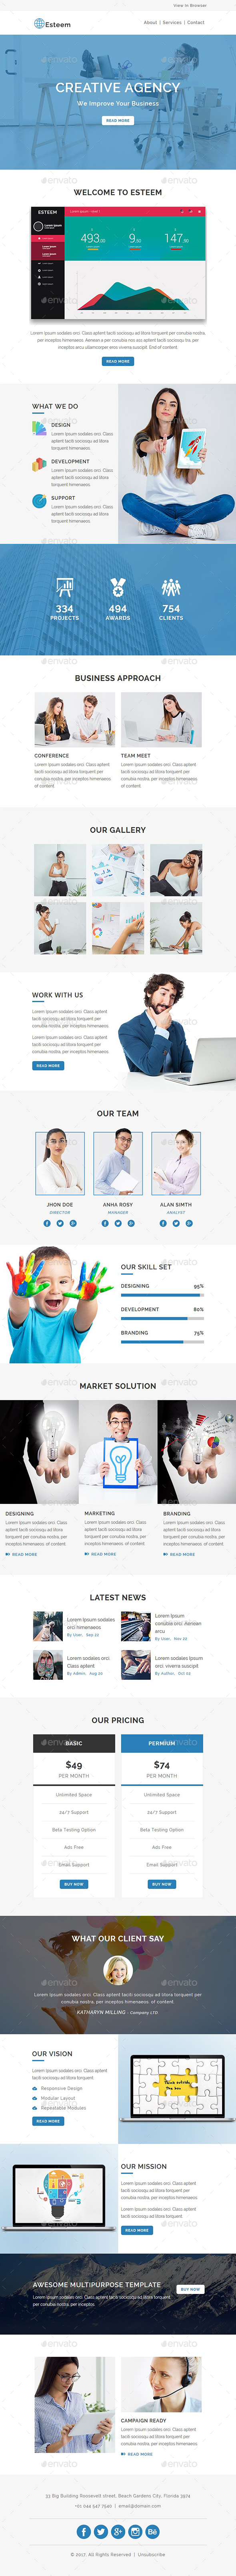 GraphicRiver Esteem Email PSD Template 20605899